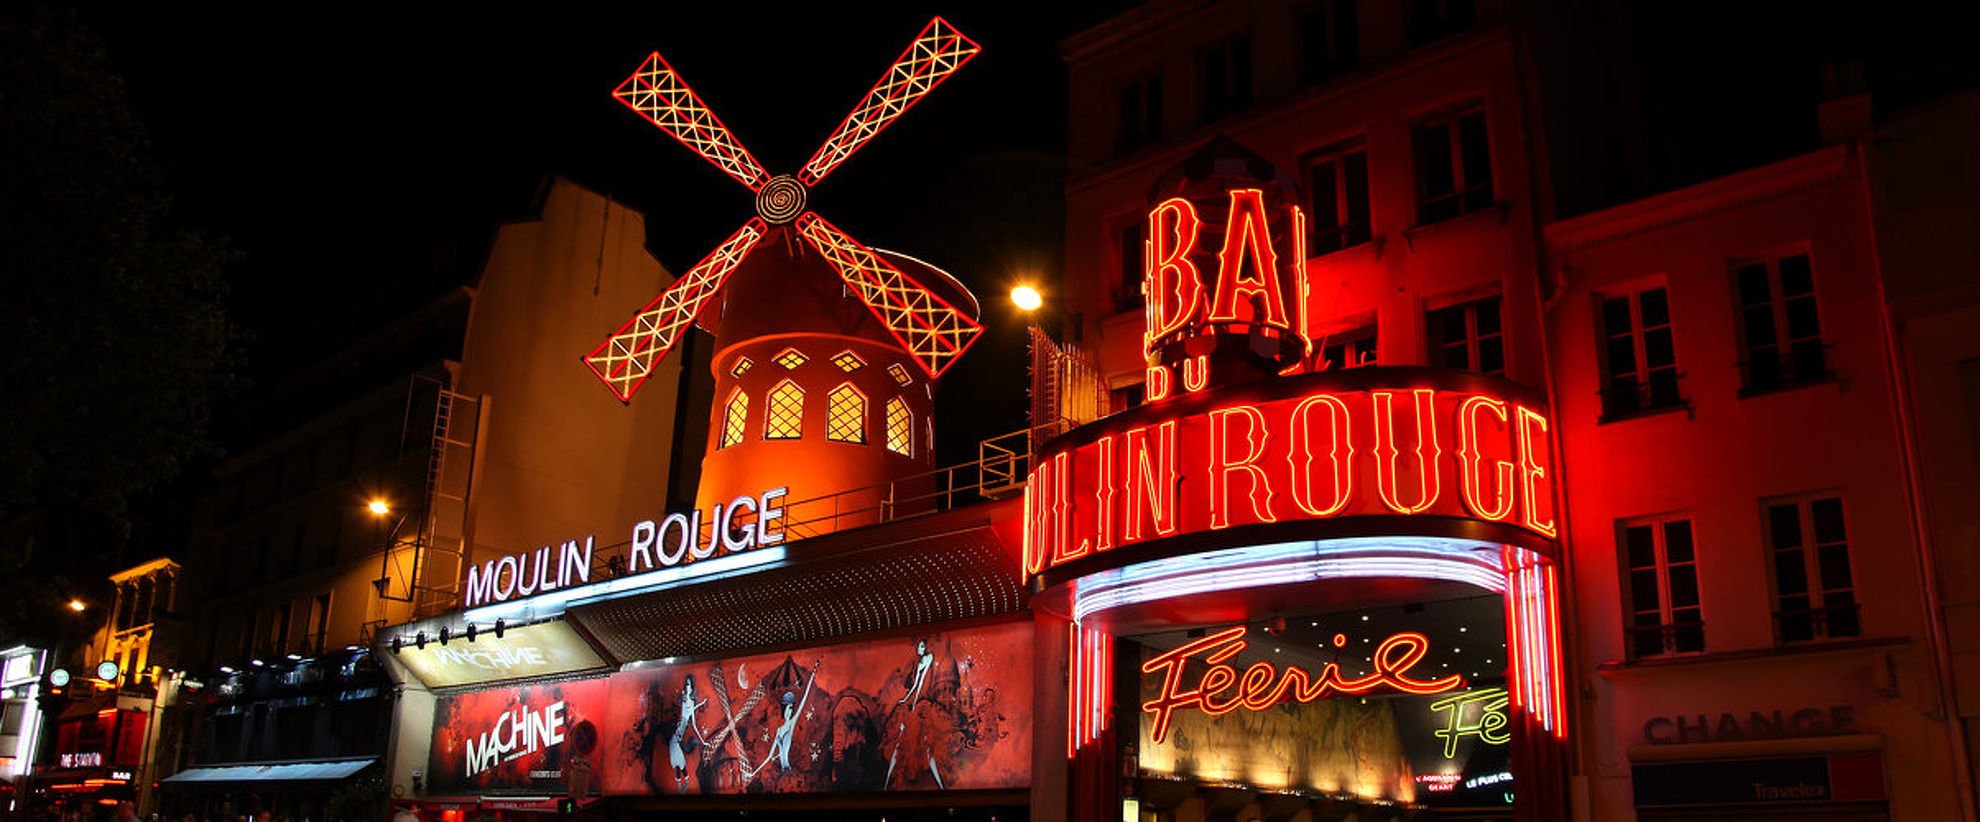 Explore The Moulin Rouge